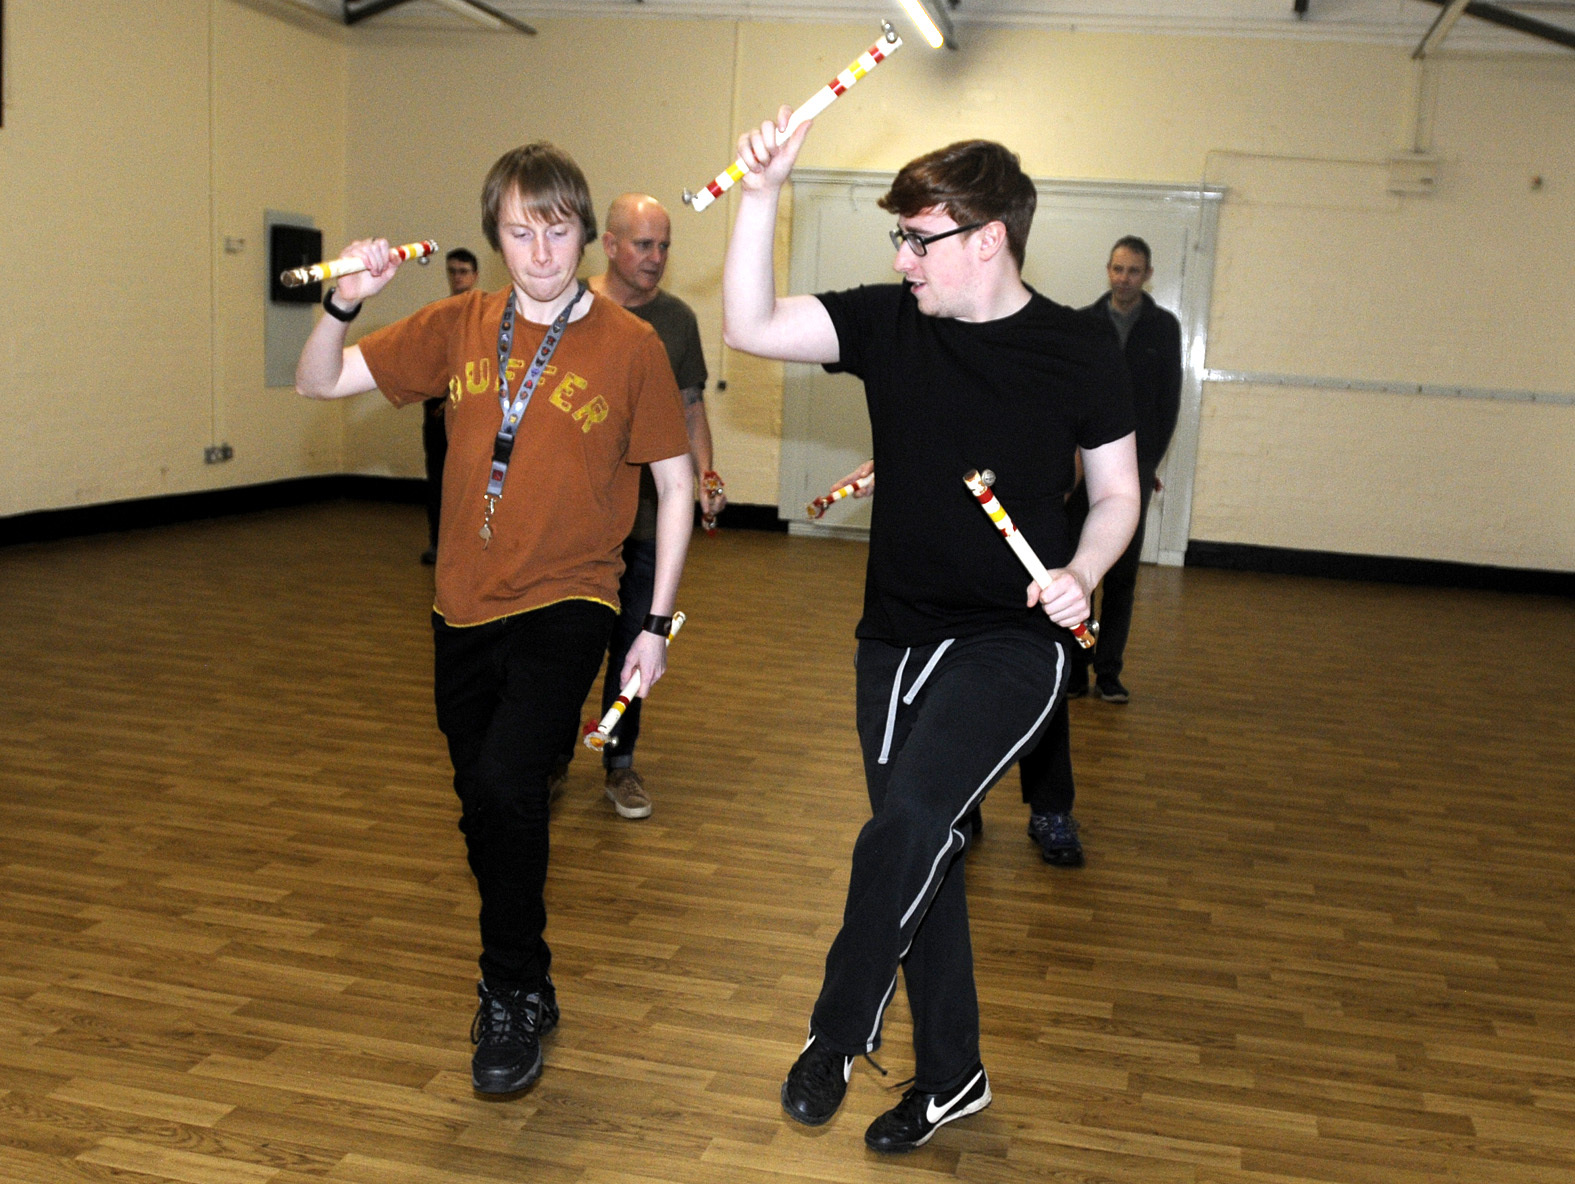 Bolton News reporter Thomas Molloy is put through his paces by Richard Hall when he tried Morris dance fitness with the Horwich Prize Medal Morris Men.